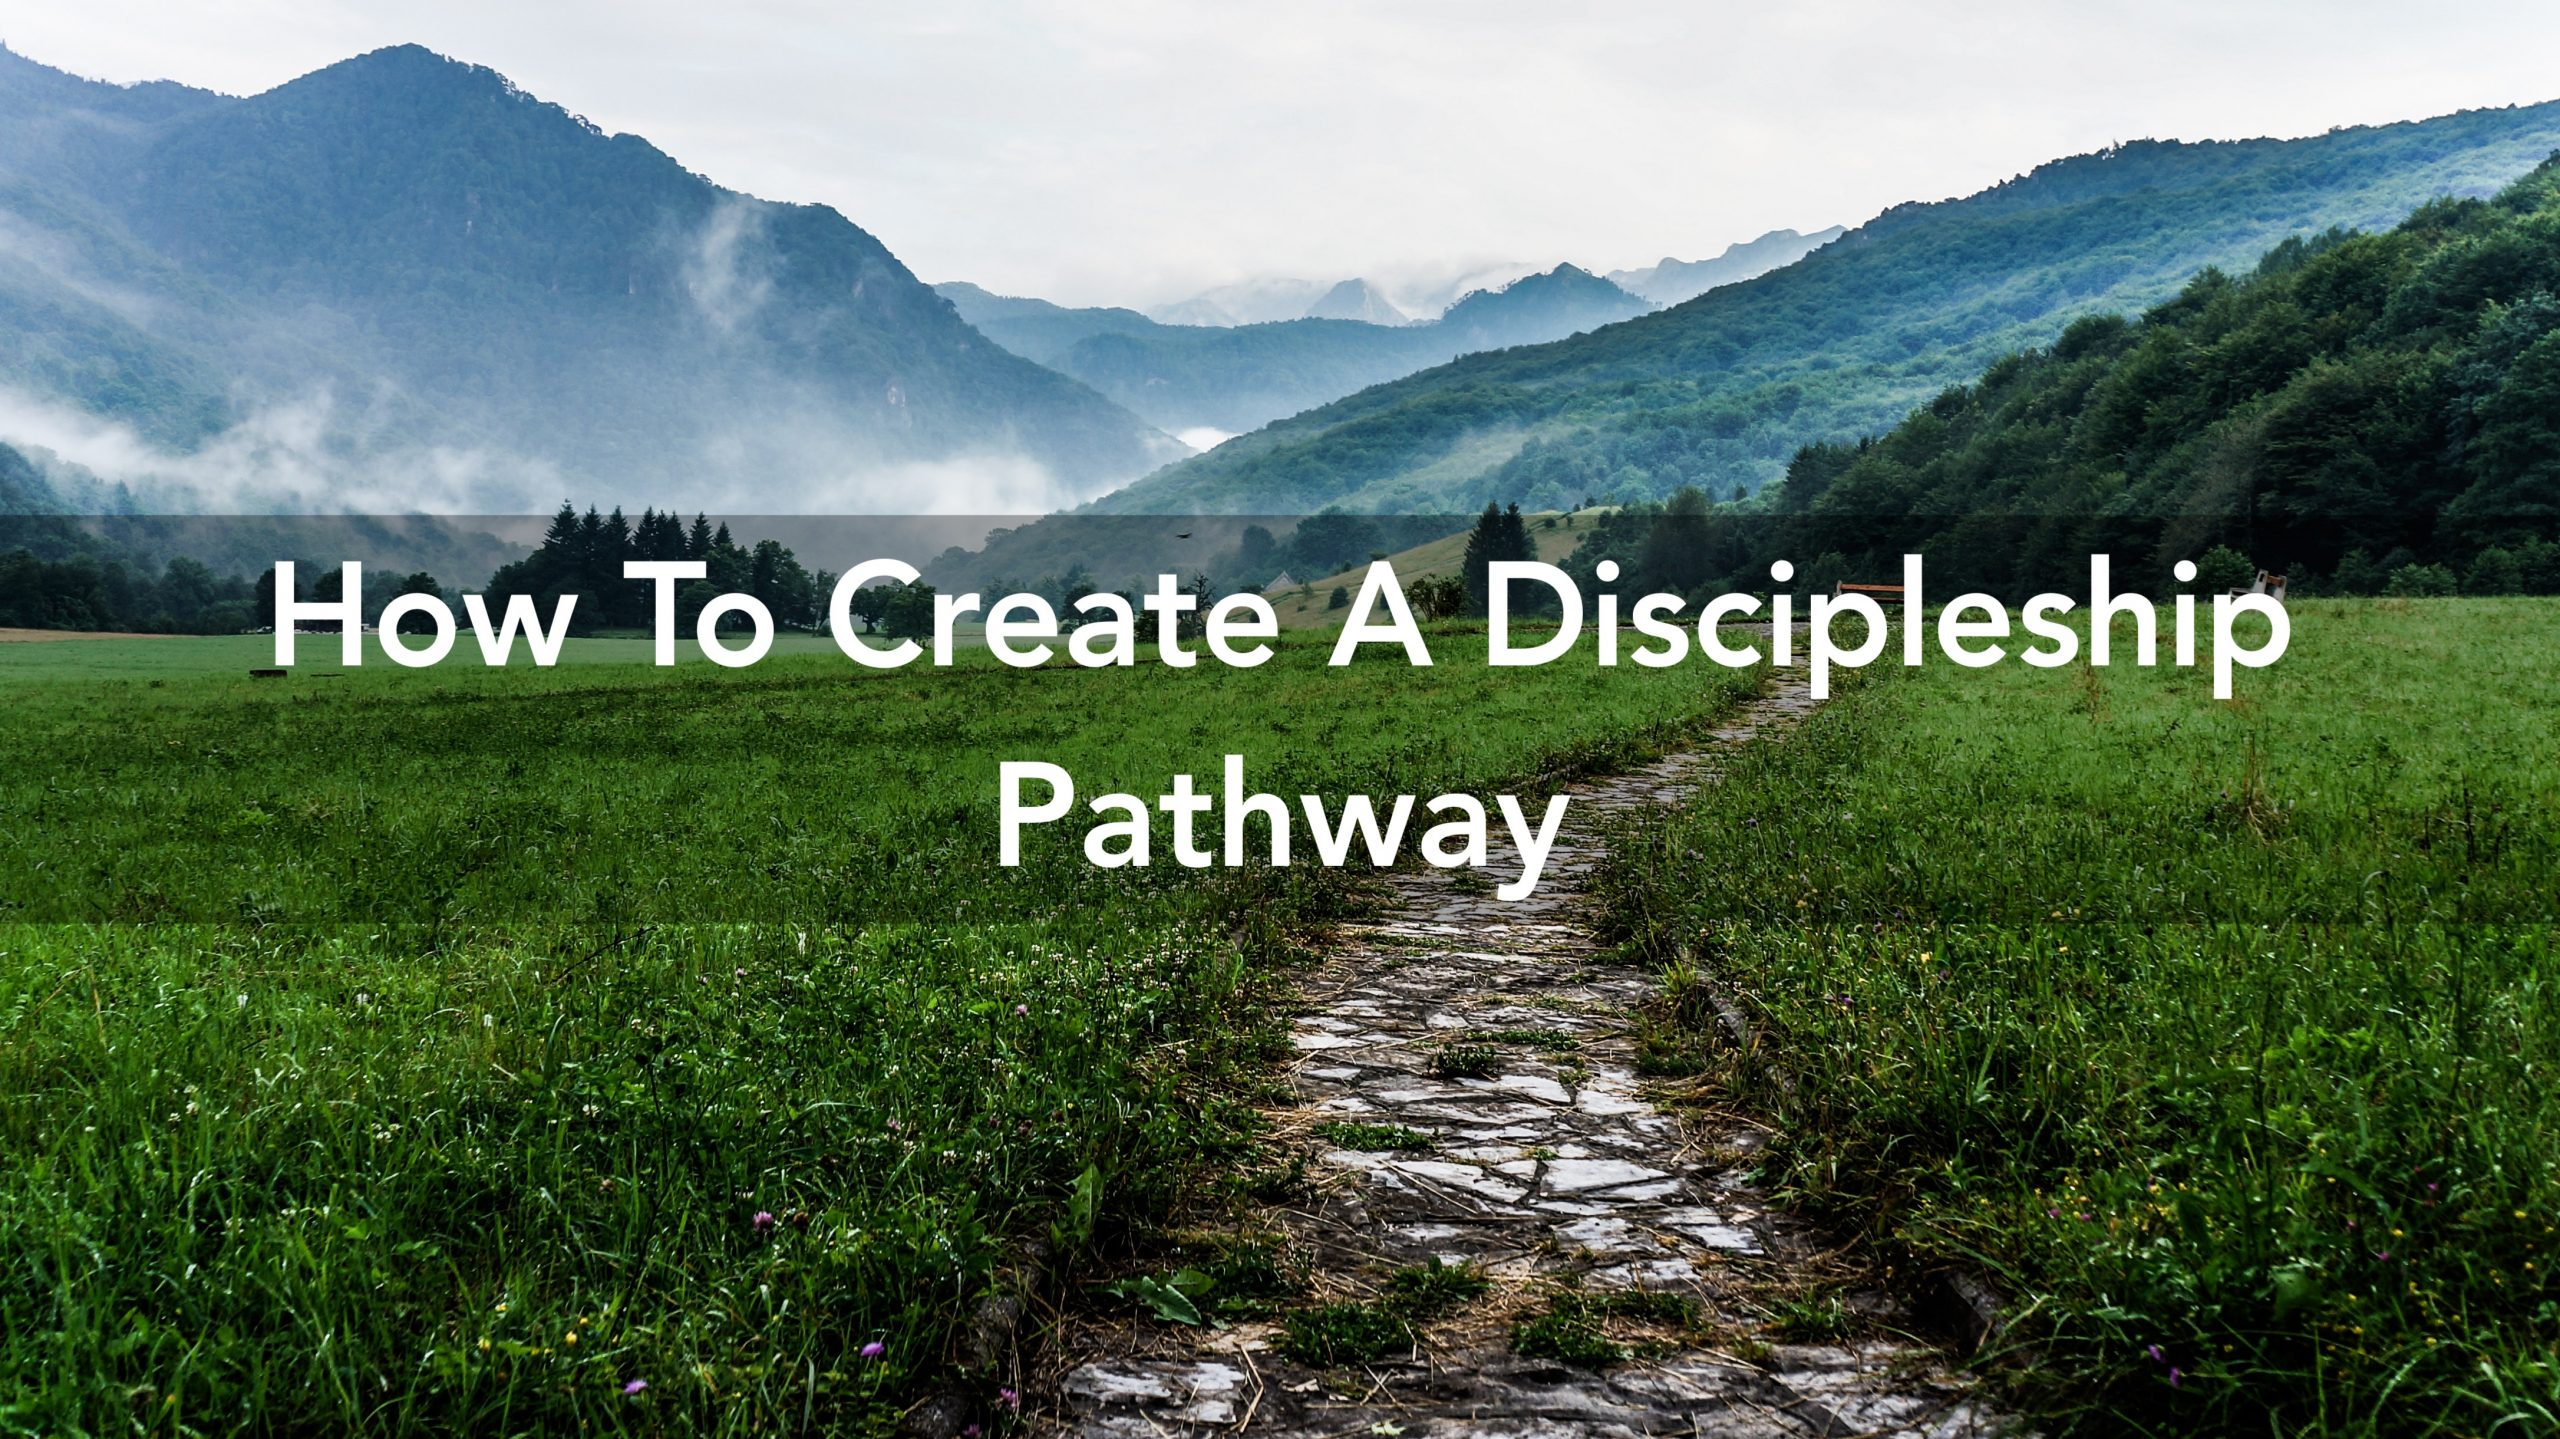 path of discipleship